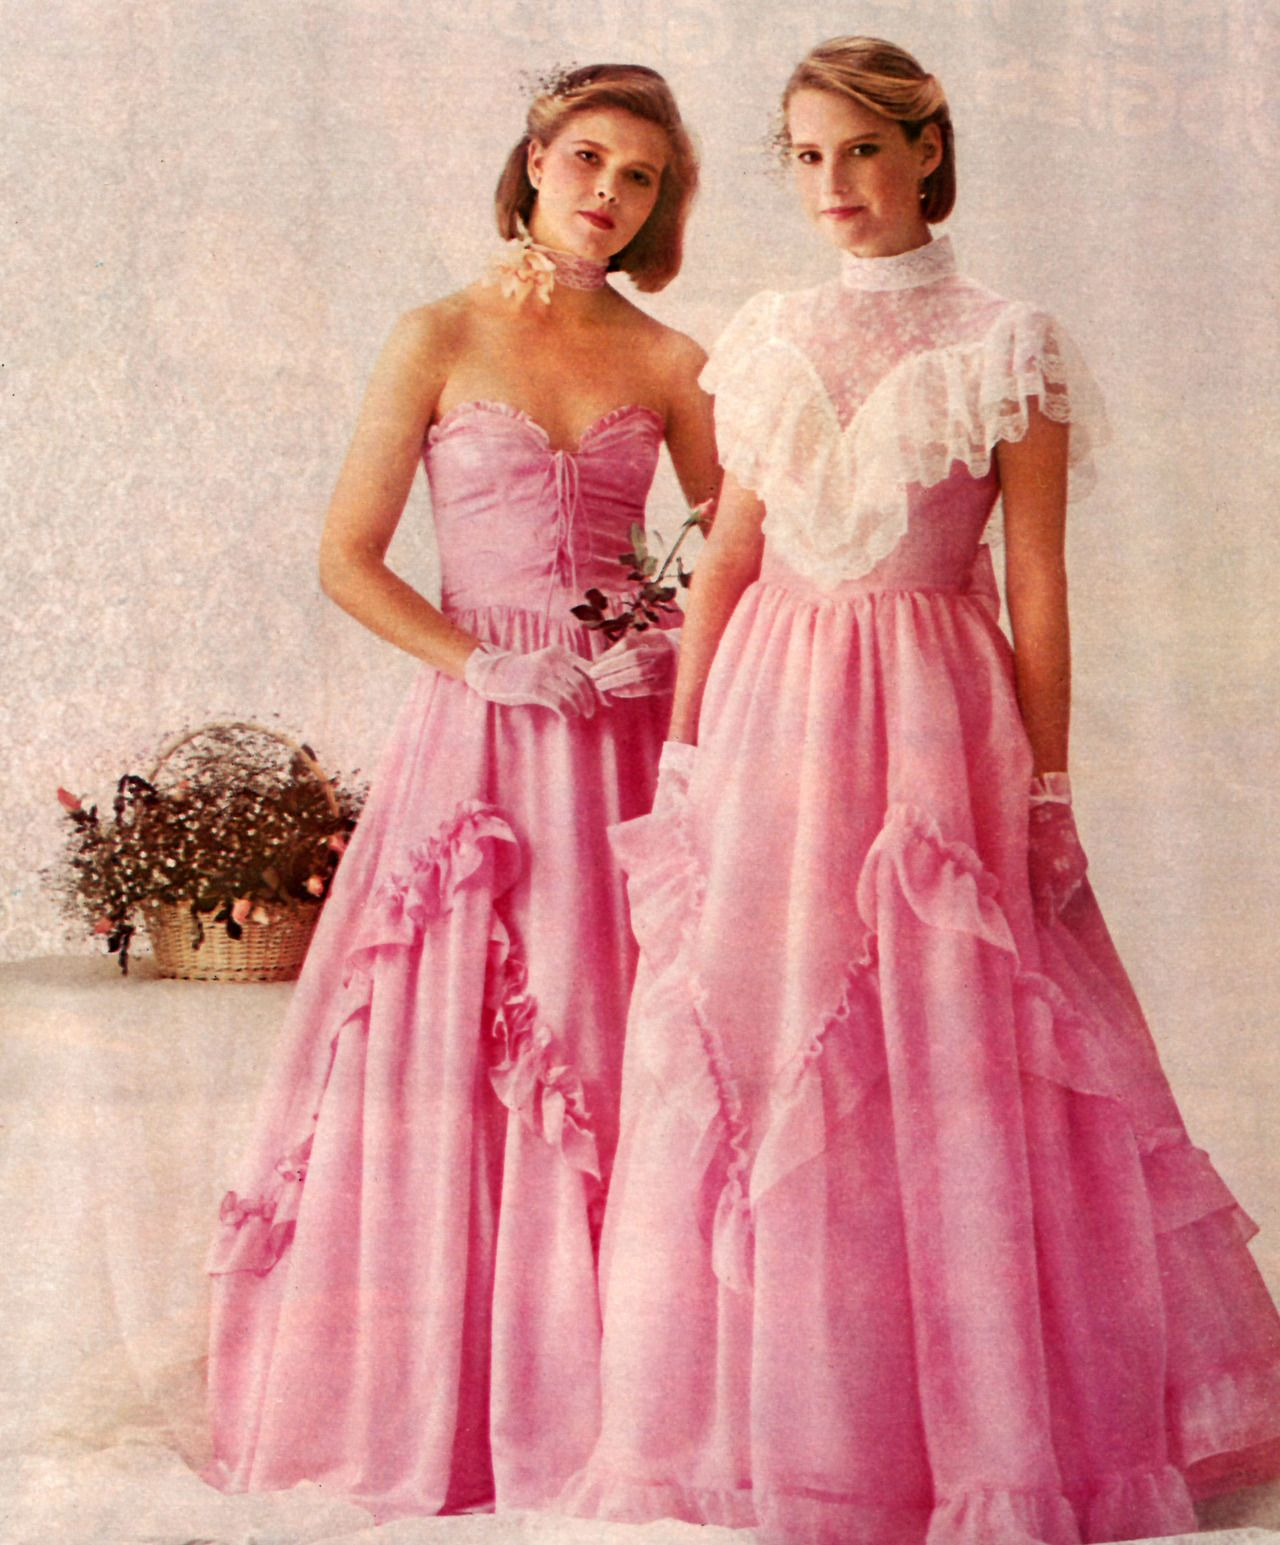 Vintage Wedding Dresses 80s: 80s Prom Dress, Prom Dresses, Dresses